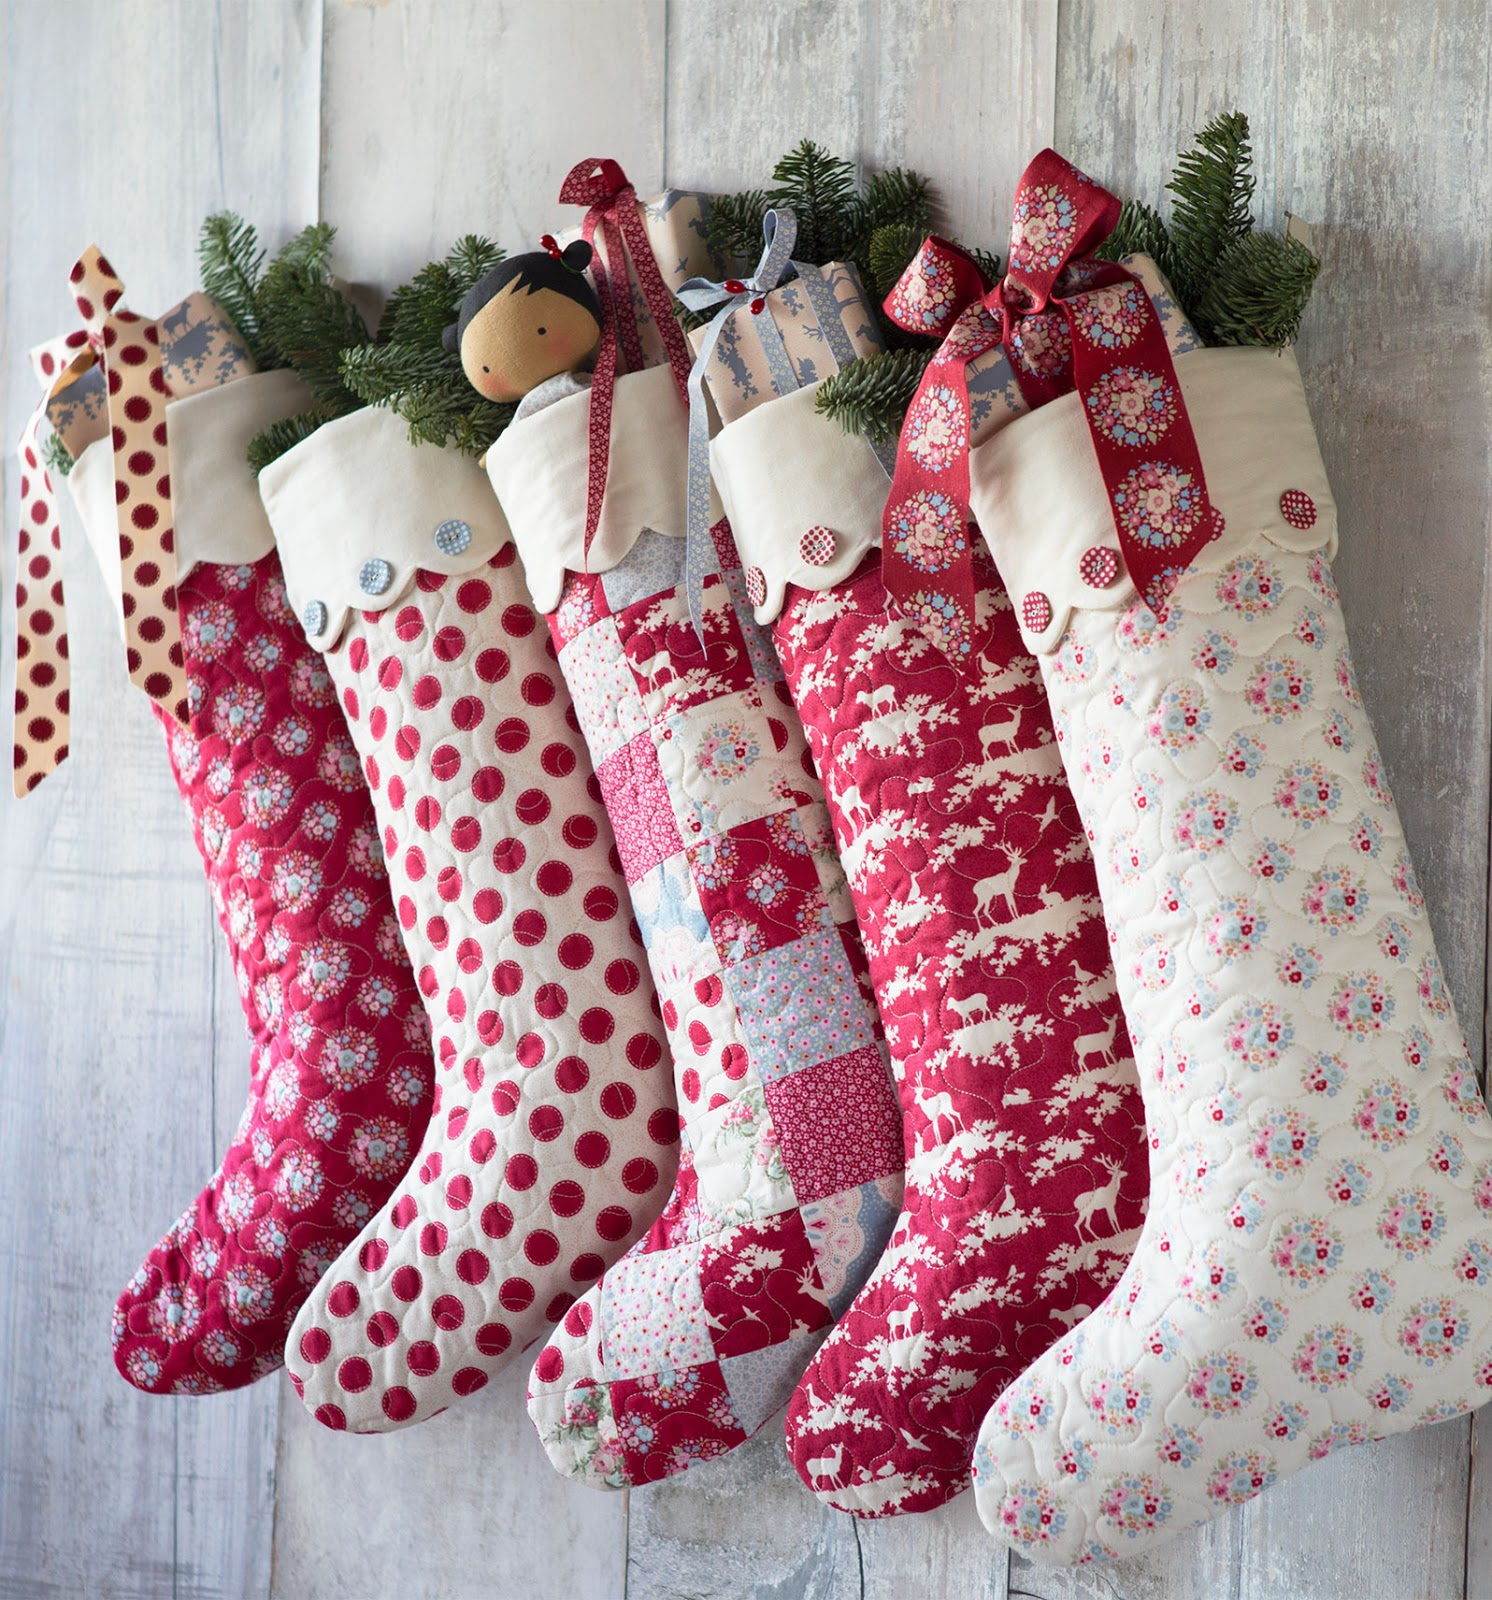 Quilt Inspiration: Free pattern day! Christmas stockings